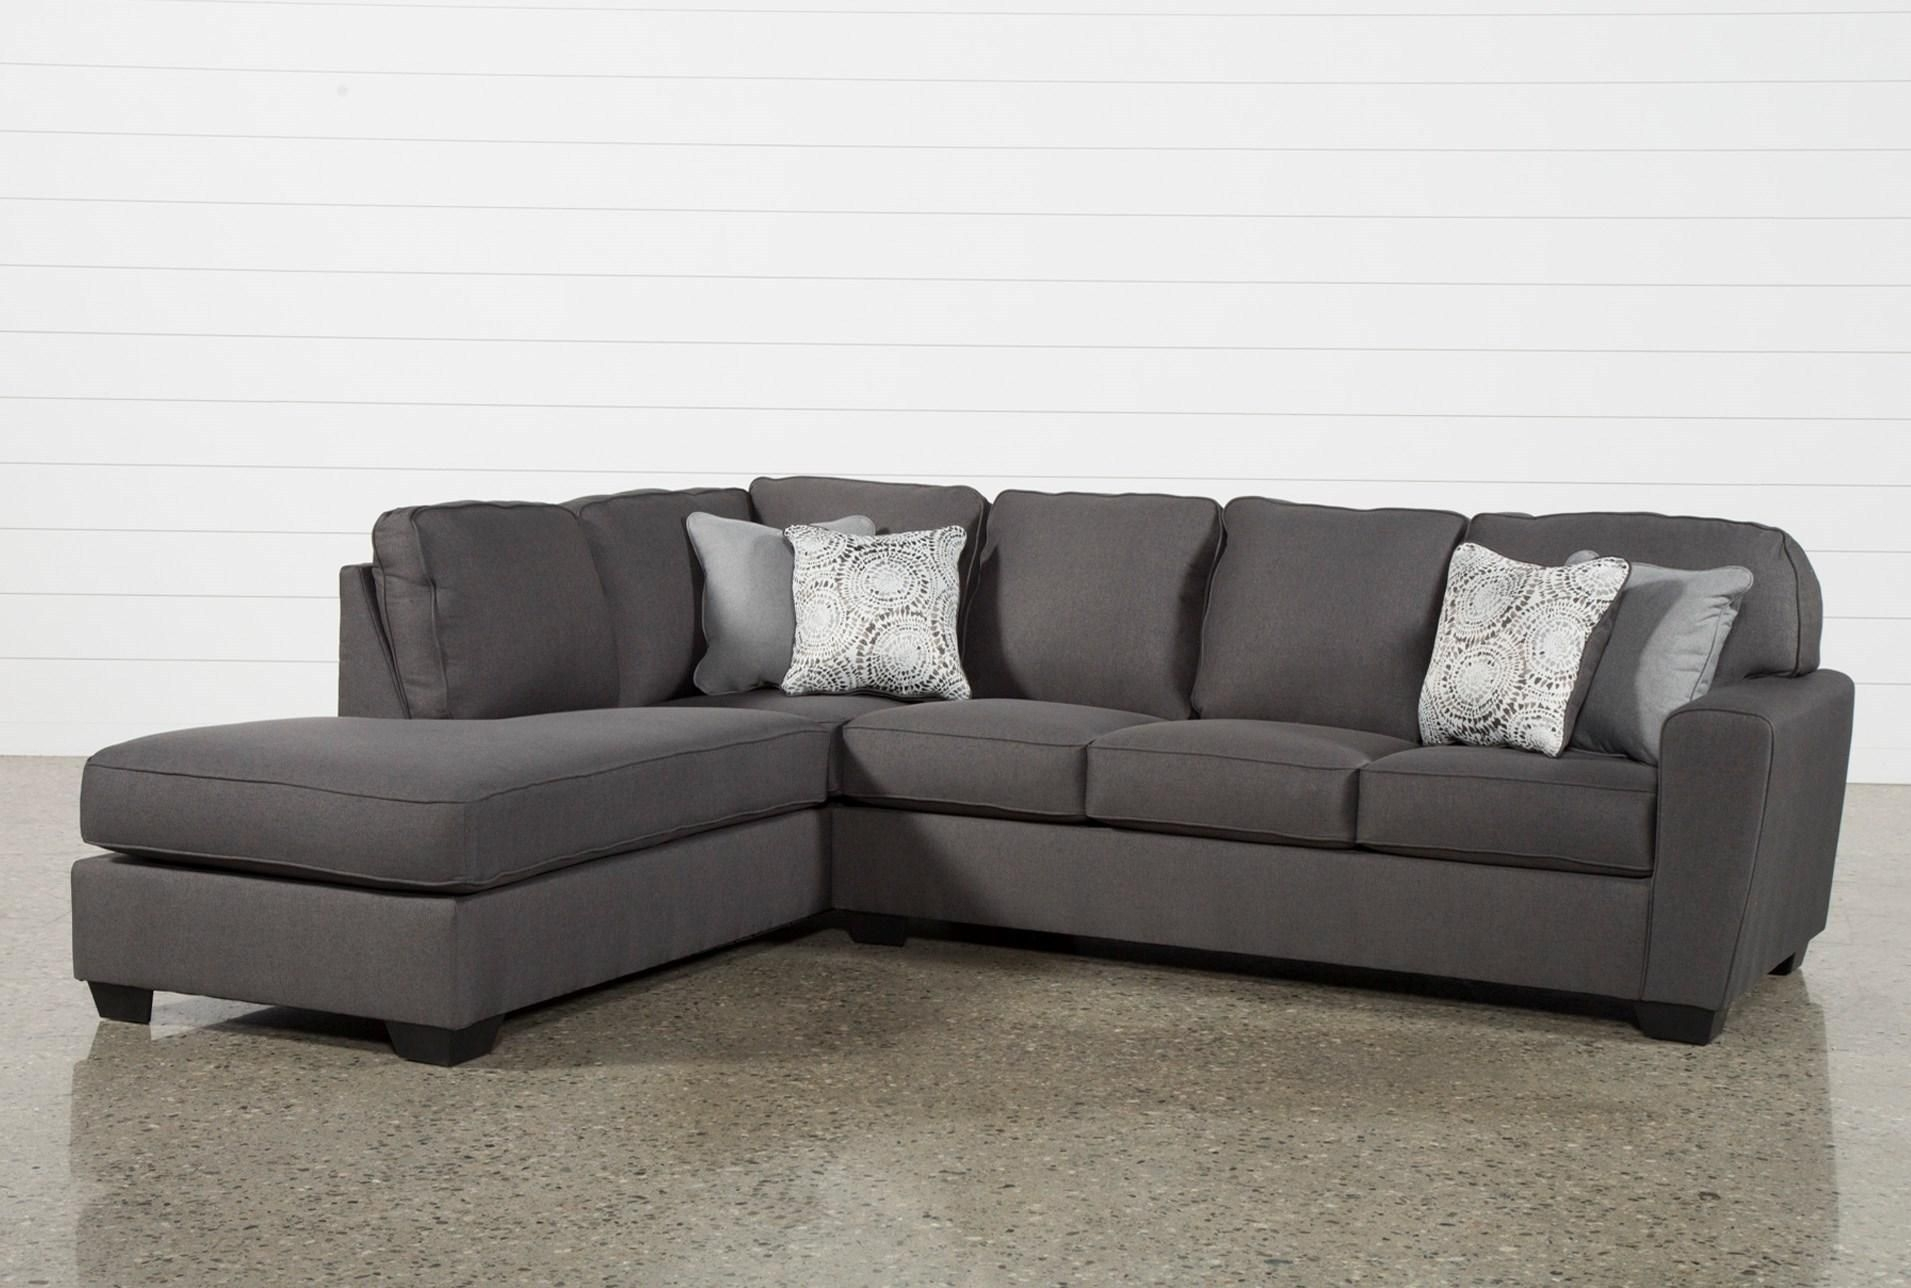 Mcdade Graphite 2 Piece Sectional W/laf Chaise | Graphite, Living In Kerri 2 Piece Sectionals With Laf Chaise (Image 21 of 25)